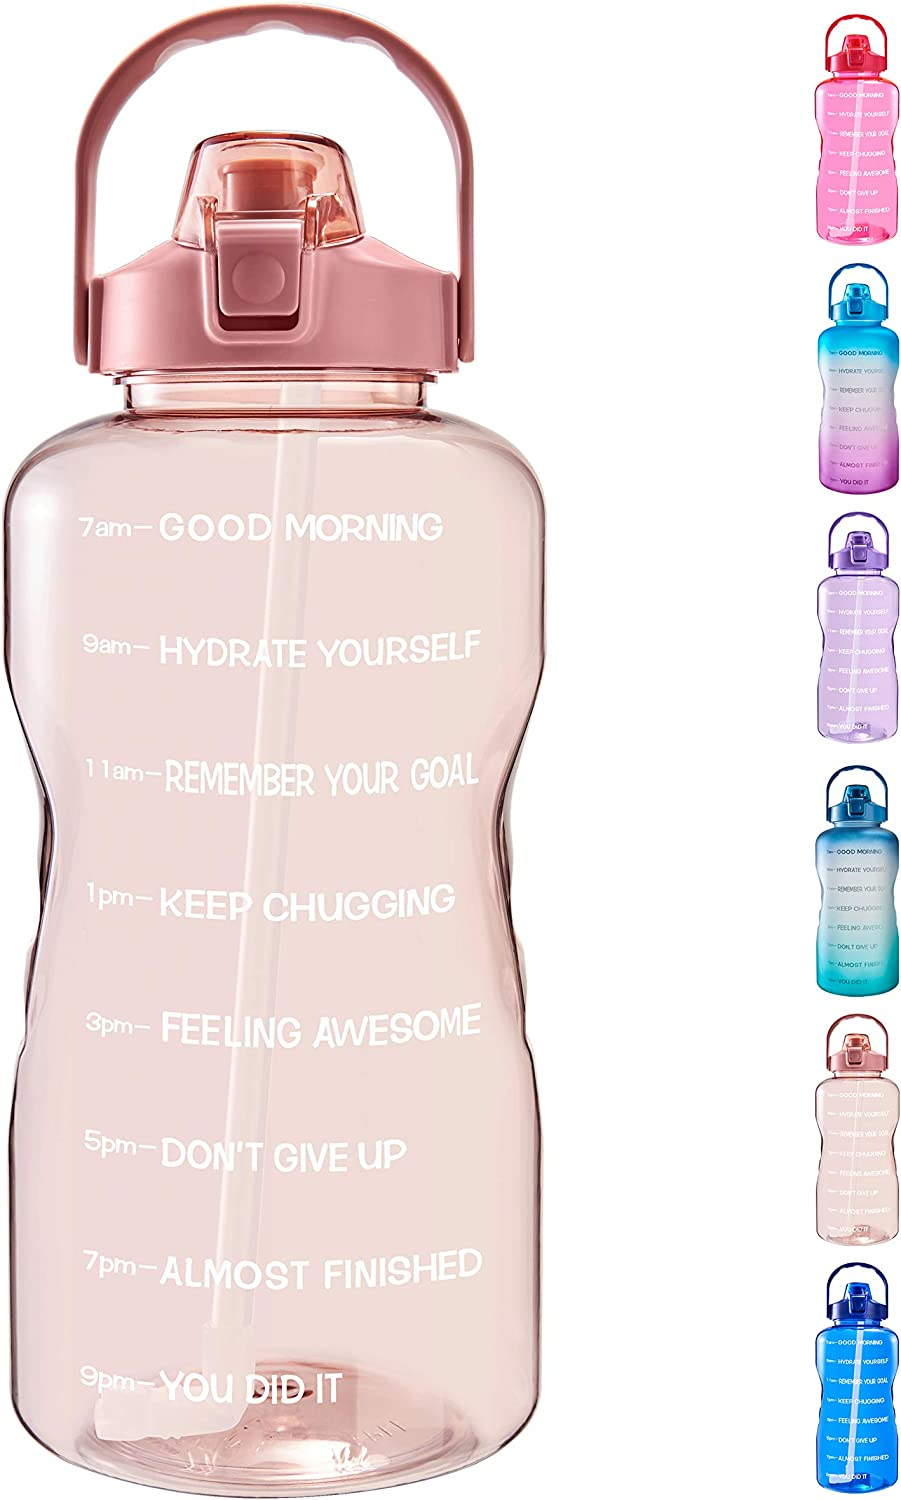 Green//Purple Gradient Carry Strap and Motivational Quote Ensure You Drink Enough Water for Fitness Leak-Proof Tritan BPA-Free Sports EYQ 1 Gallon//128 oz Water Bottle with Time Marker Camp Gym